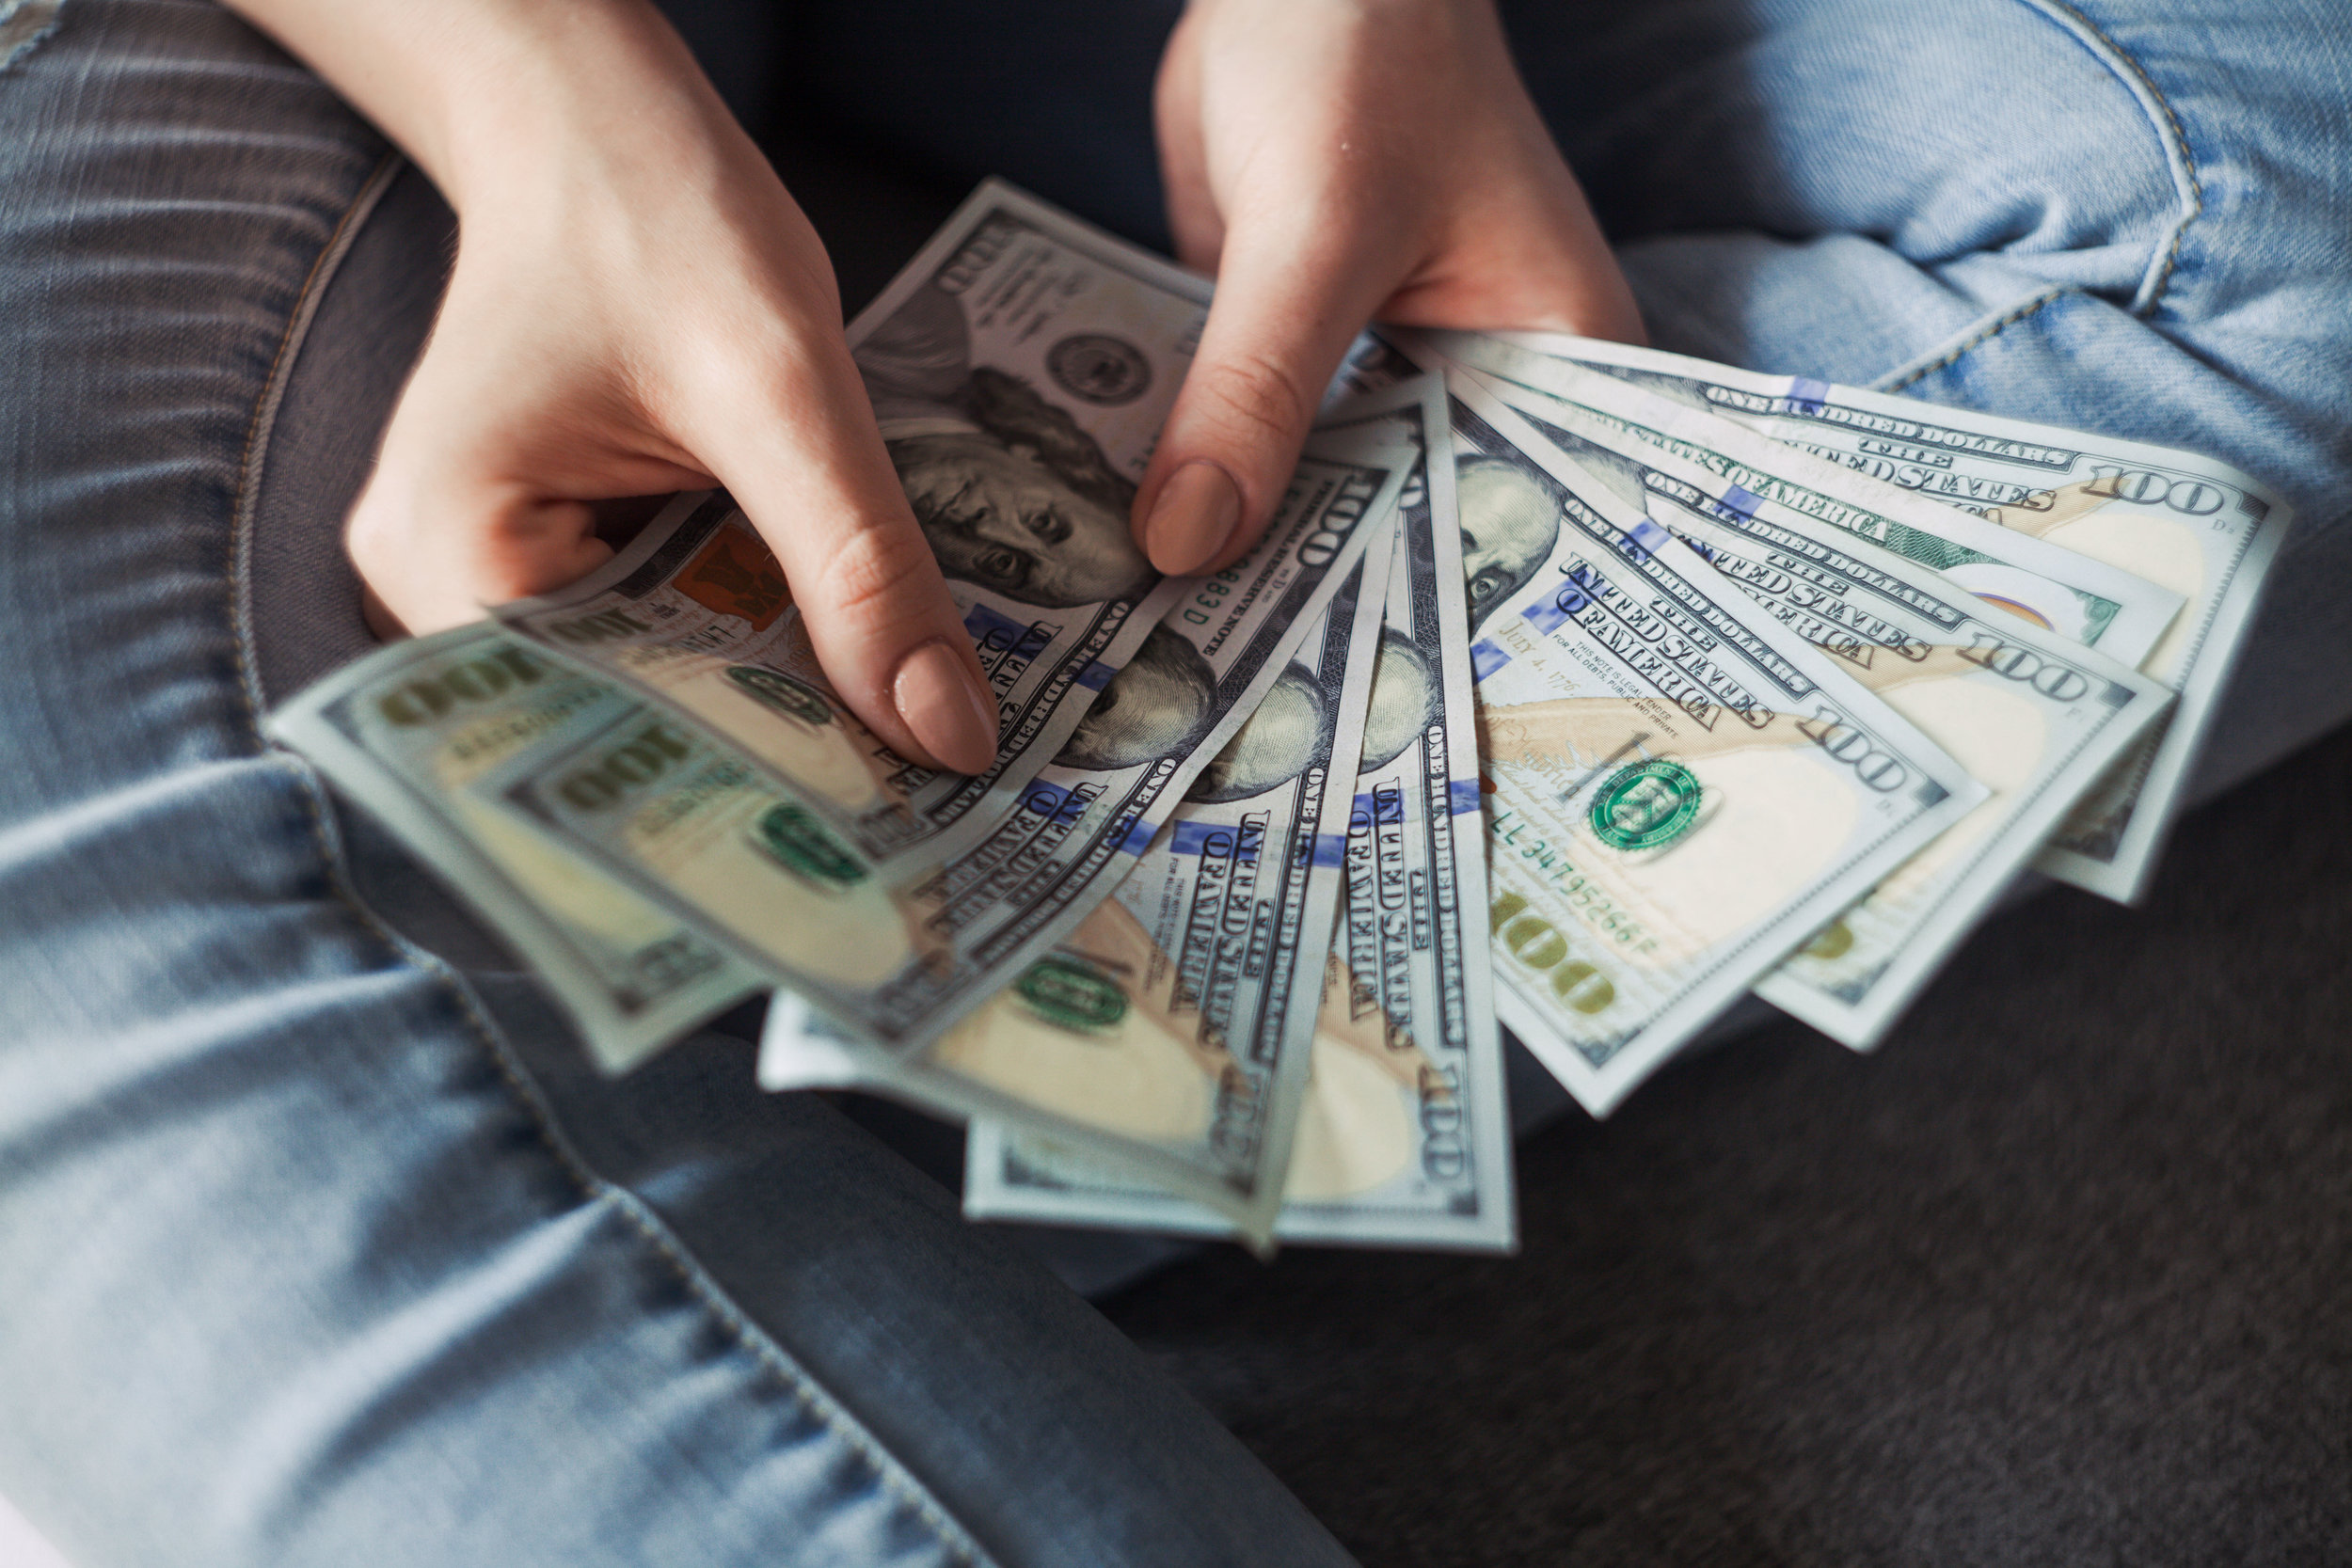 Change your relationship with money